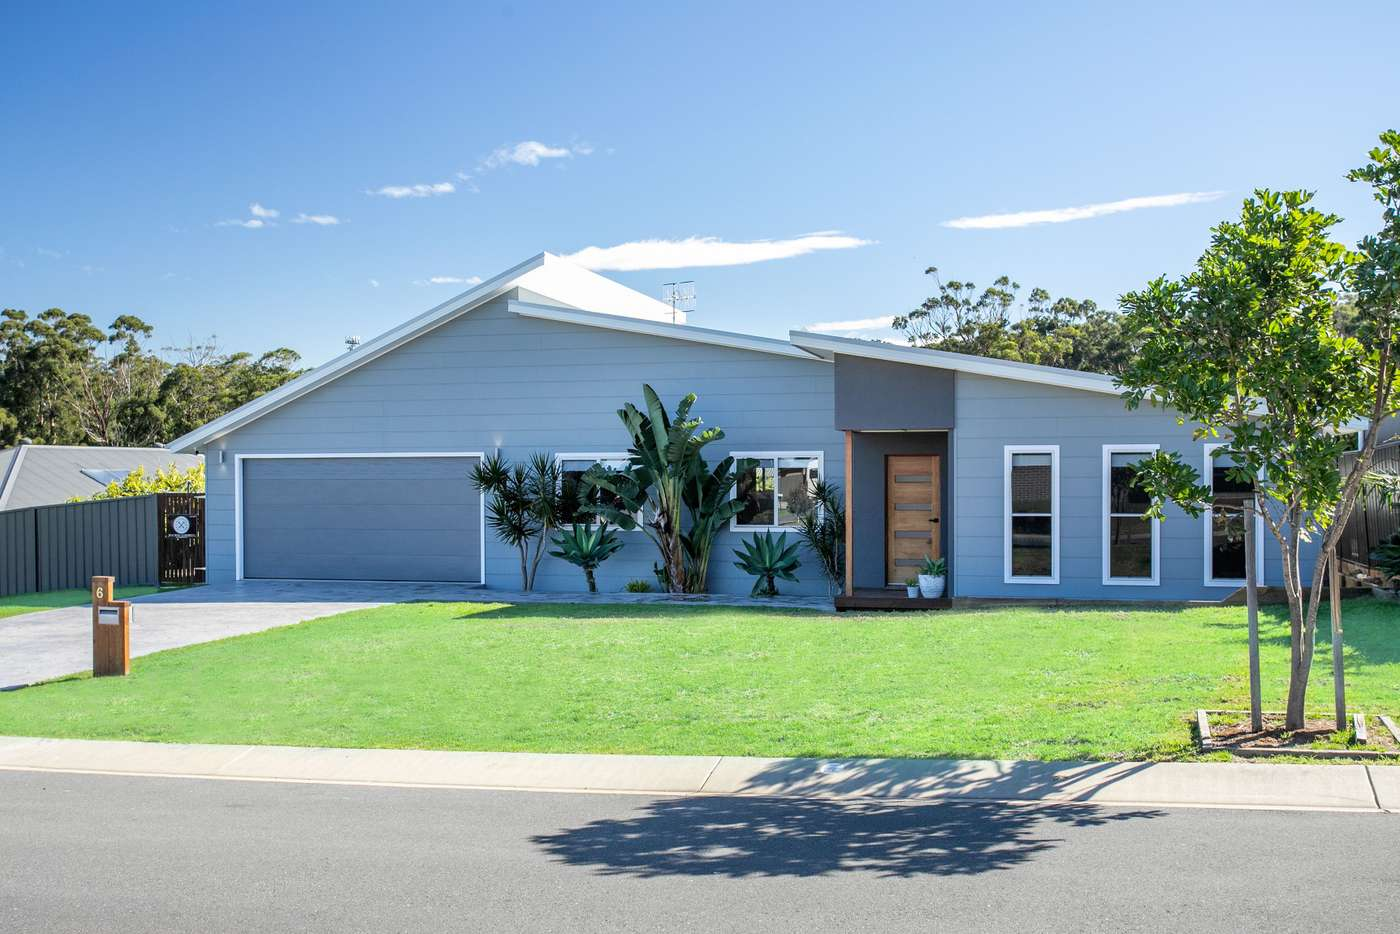 Main view of Homely house listing, 6 Gadara Place, Ulladulla NSW 2539